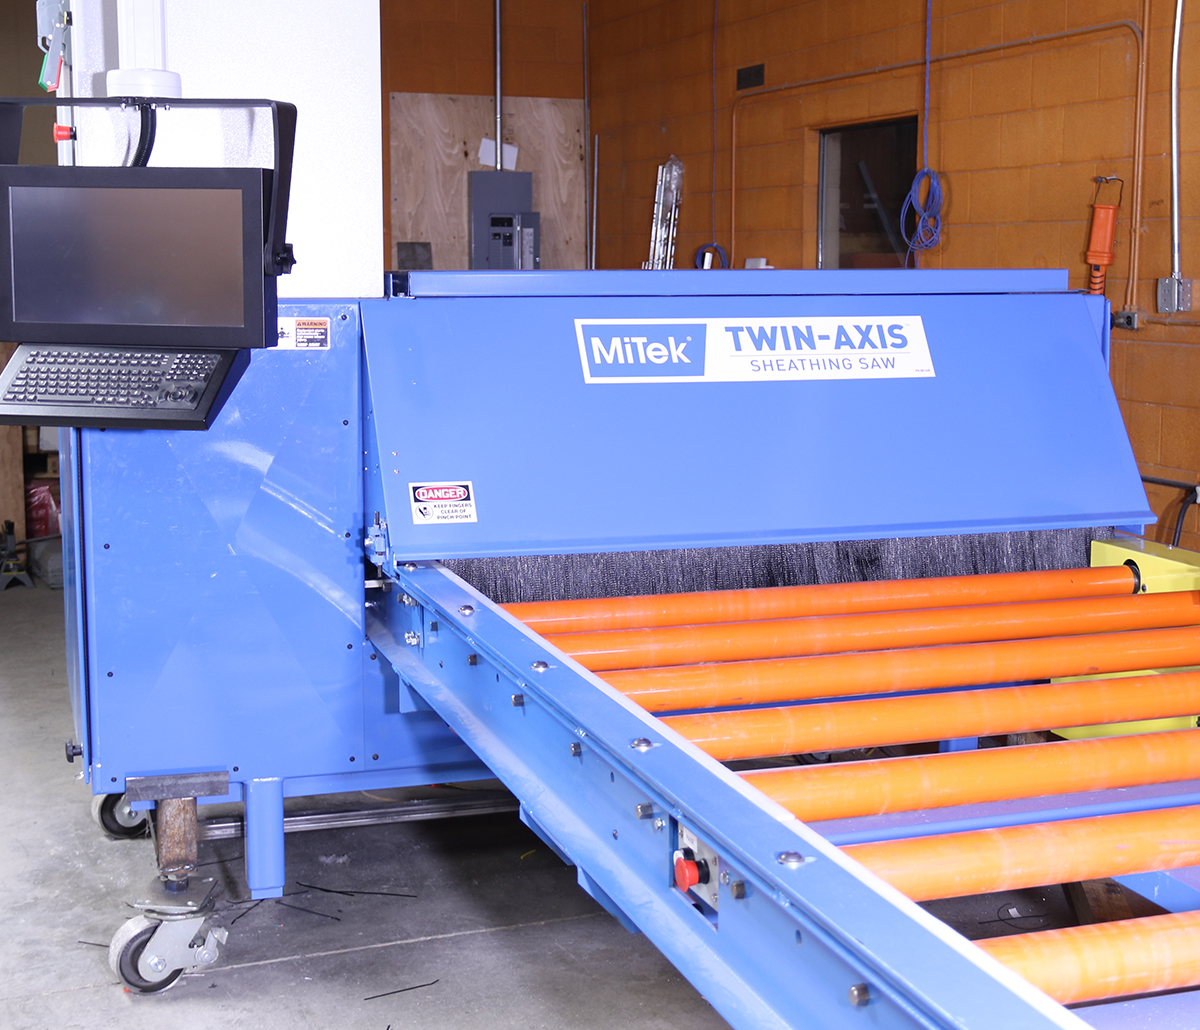 MiTek Twin Axis Sheathing Saw Automated Solutions - Twin-Axis Sheathing Saw in facility